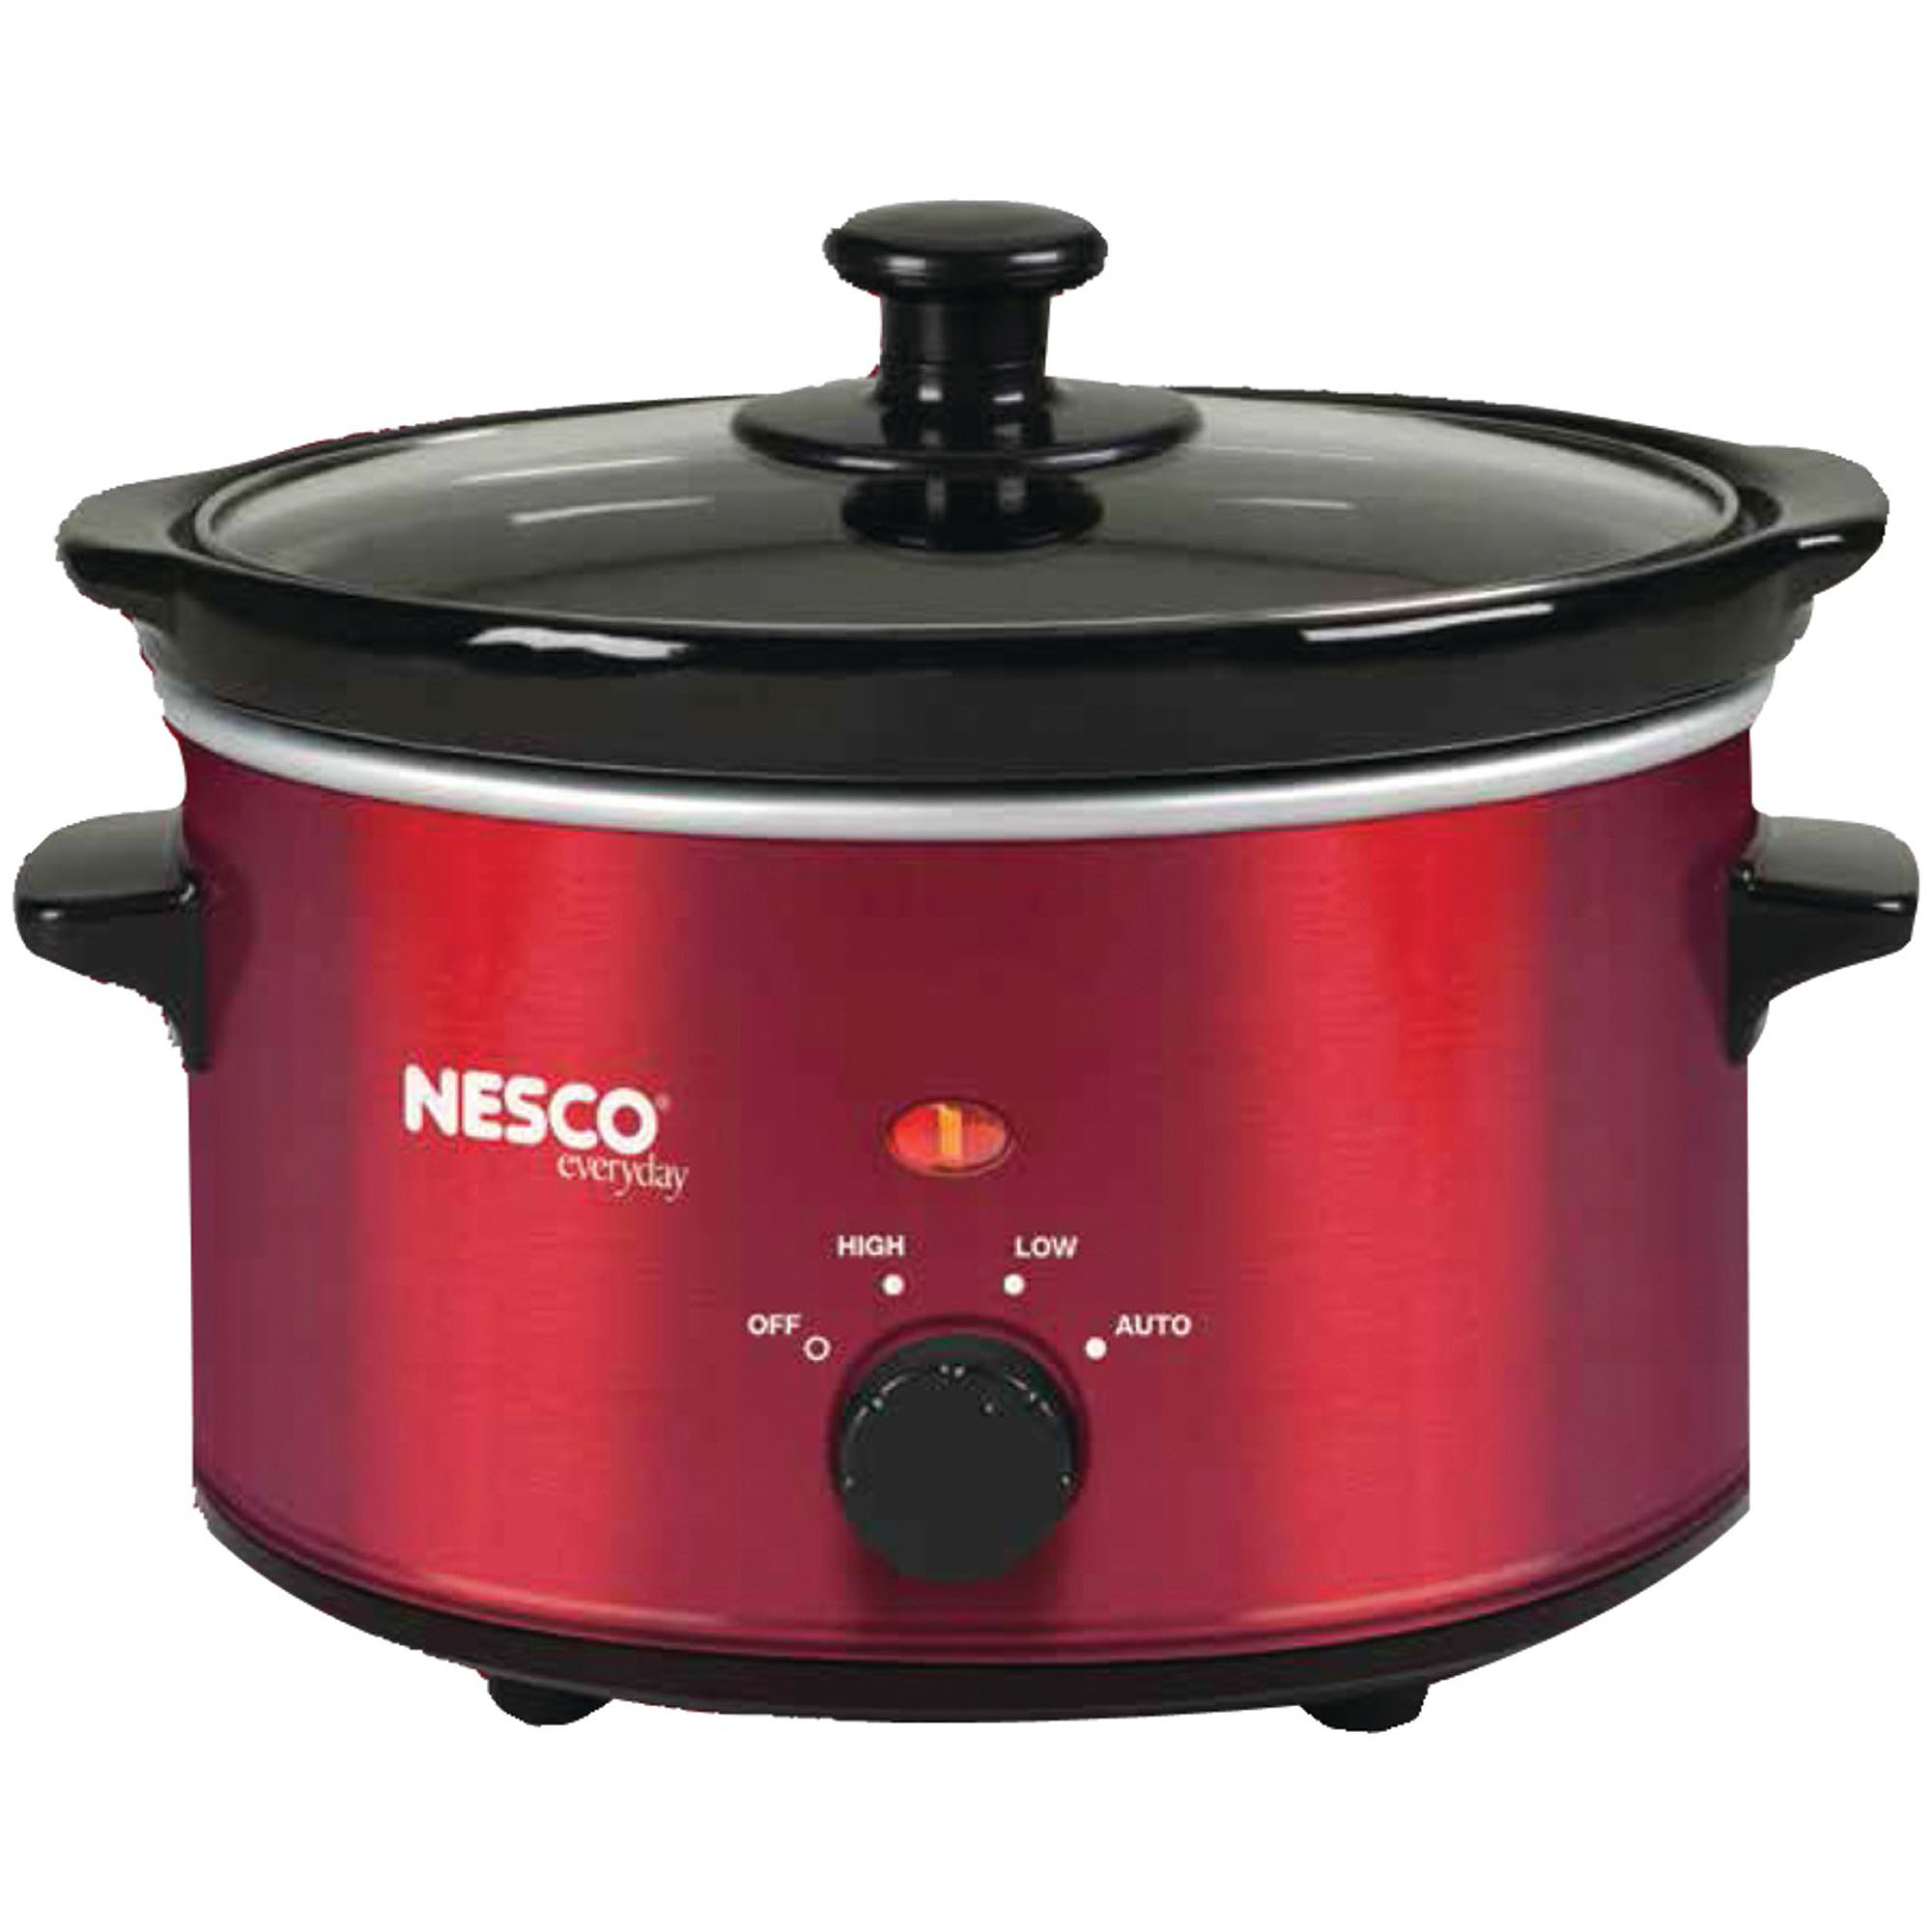 Nesco SC-150R 1.5-Quart Oval Slow Cooker, Metallic Red